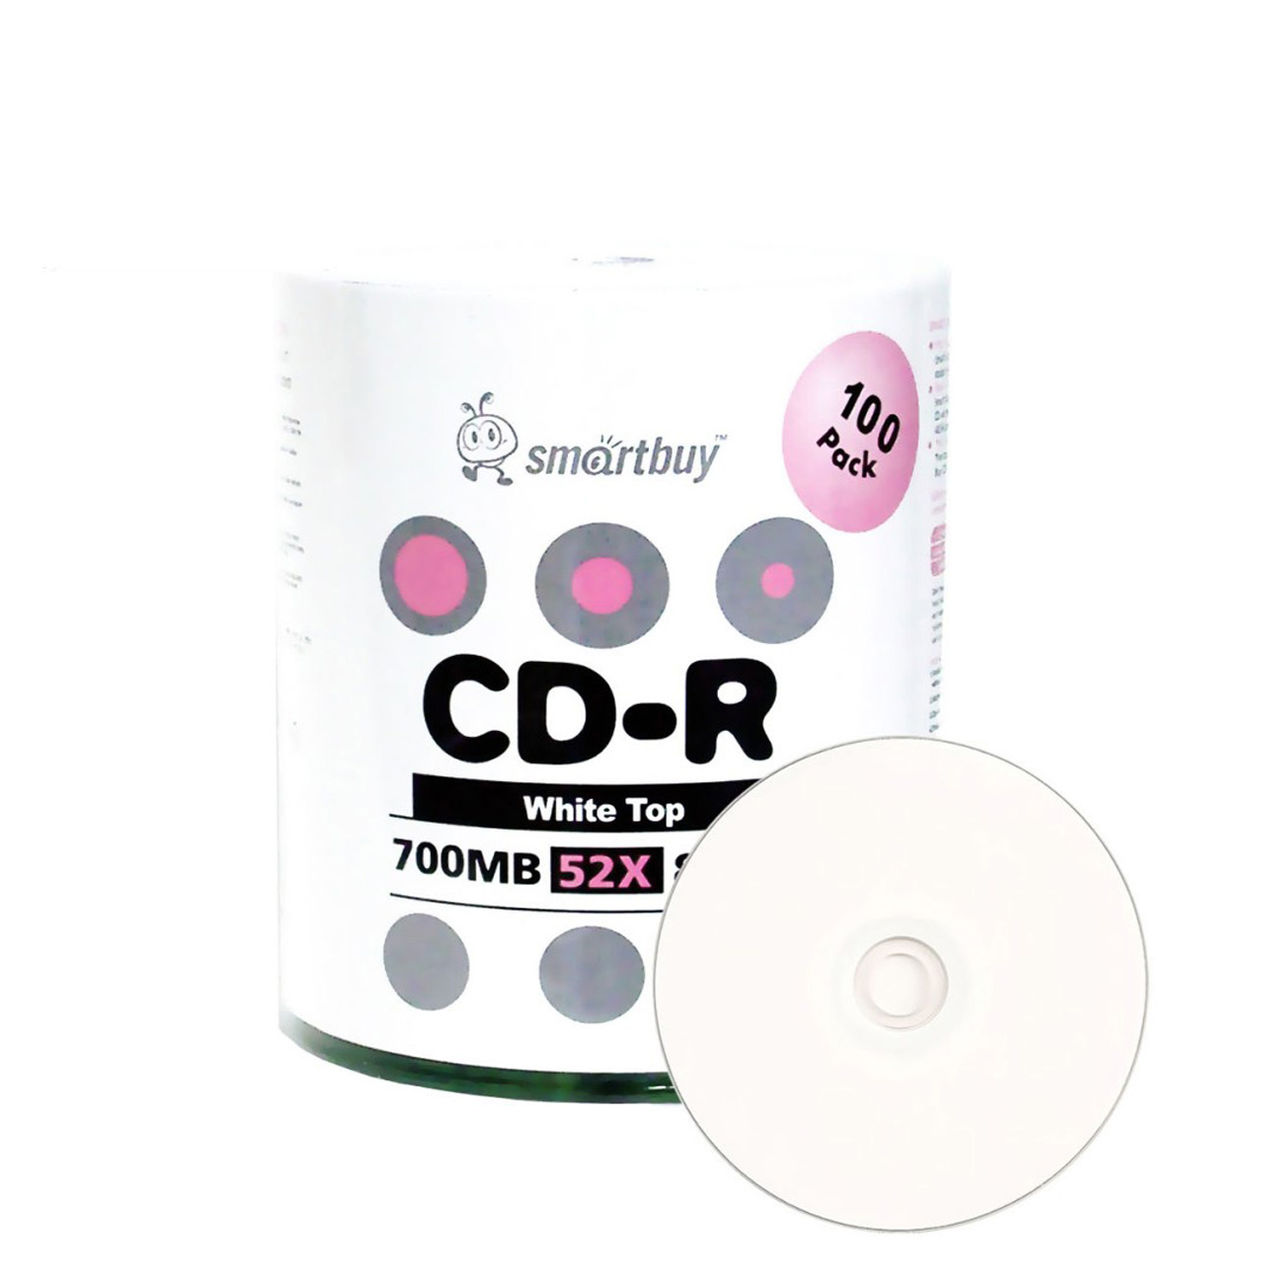 100 Pack Smartbuy 52X CD-R 700MB 80Min White Top (Non-Printable) Data Blank Media Recordable Disc